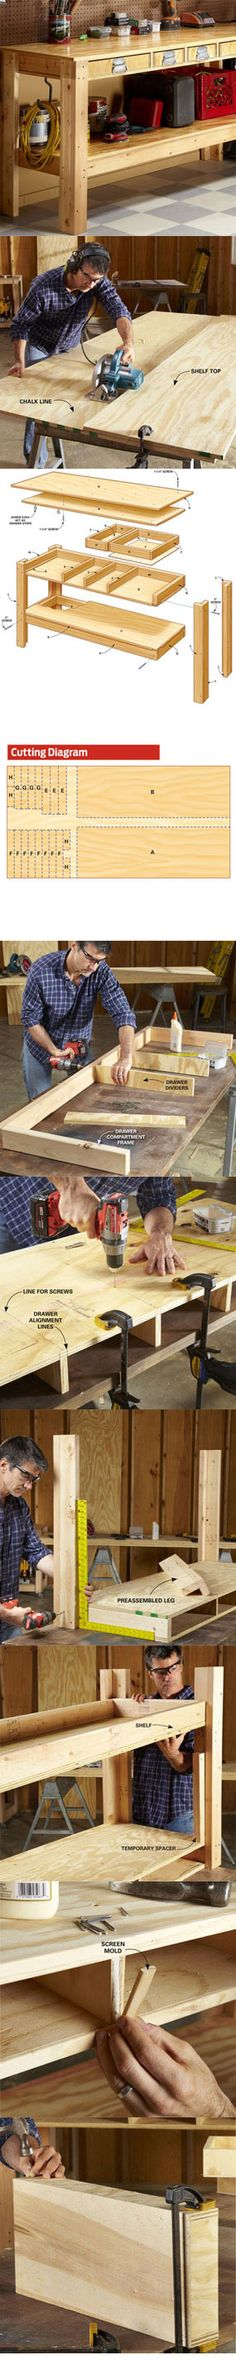 Simple Workbench Plans Use this simple workbench plan to build a sturdy, tough workbench that'll last for decades. It has drawers and shelves for tool storage. It's inexpensive. And even a novice can build it in one day. Get your simple workbench plans at Simple Workbench Plans, Woodworking Workbench, Woodworking Shop, Woodworking Projects, Workbench Ideas, Workbench Drawers, Woodworking Workshop, Garage Workbench, Woodworking Techniques